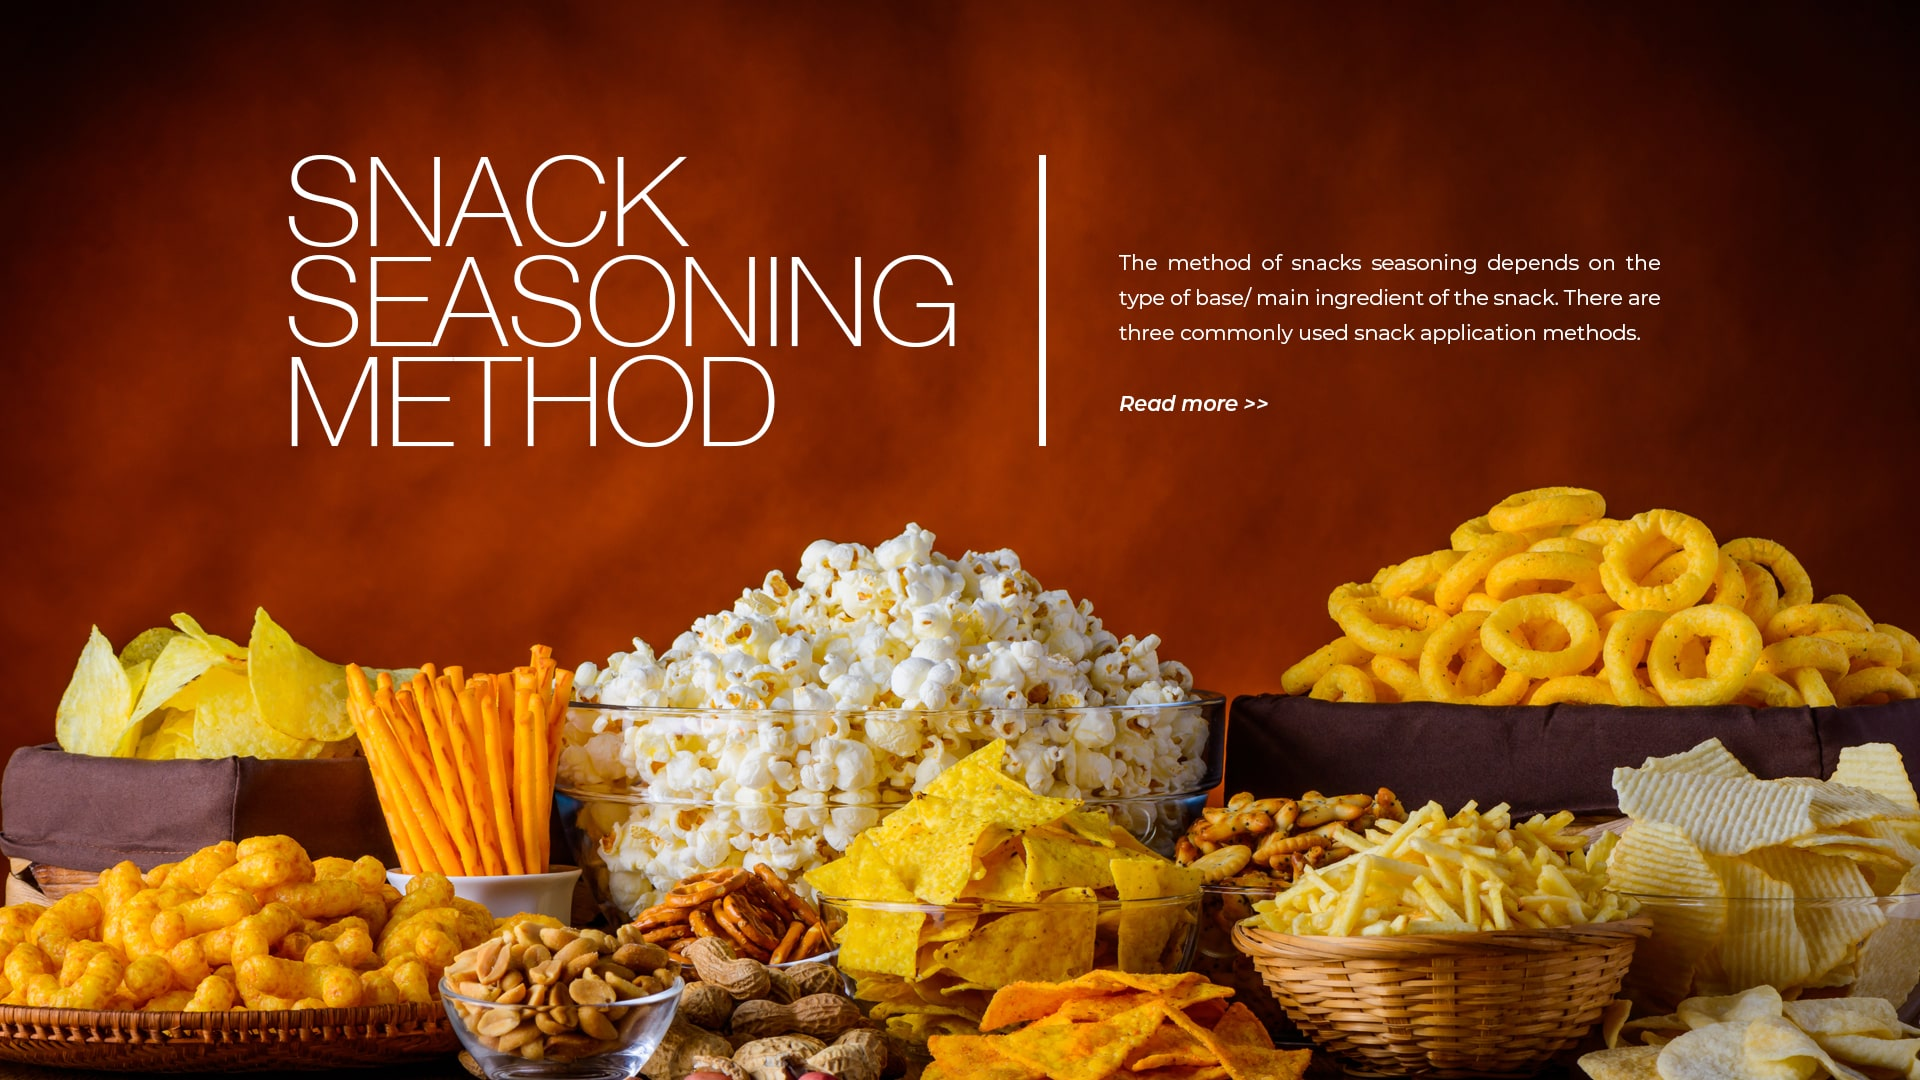 snack seasoning method